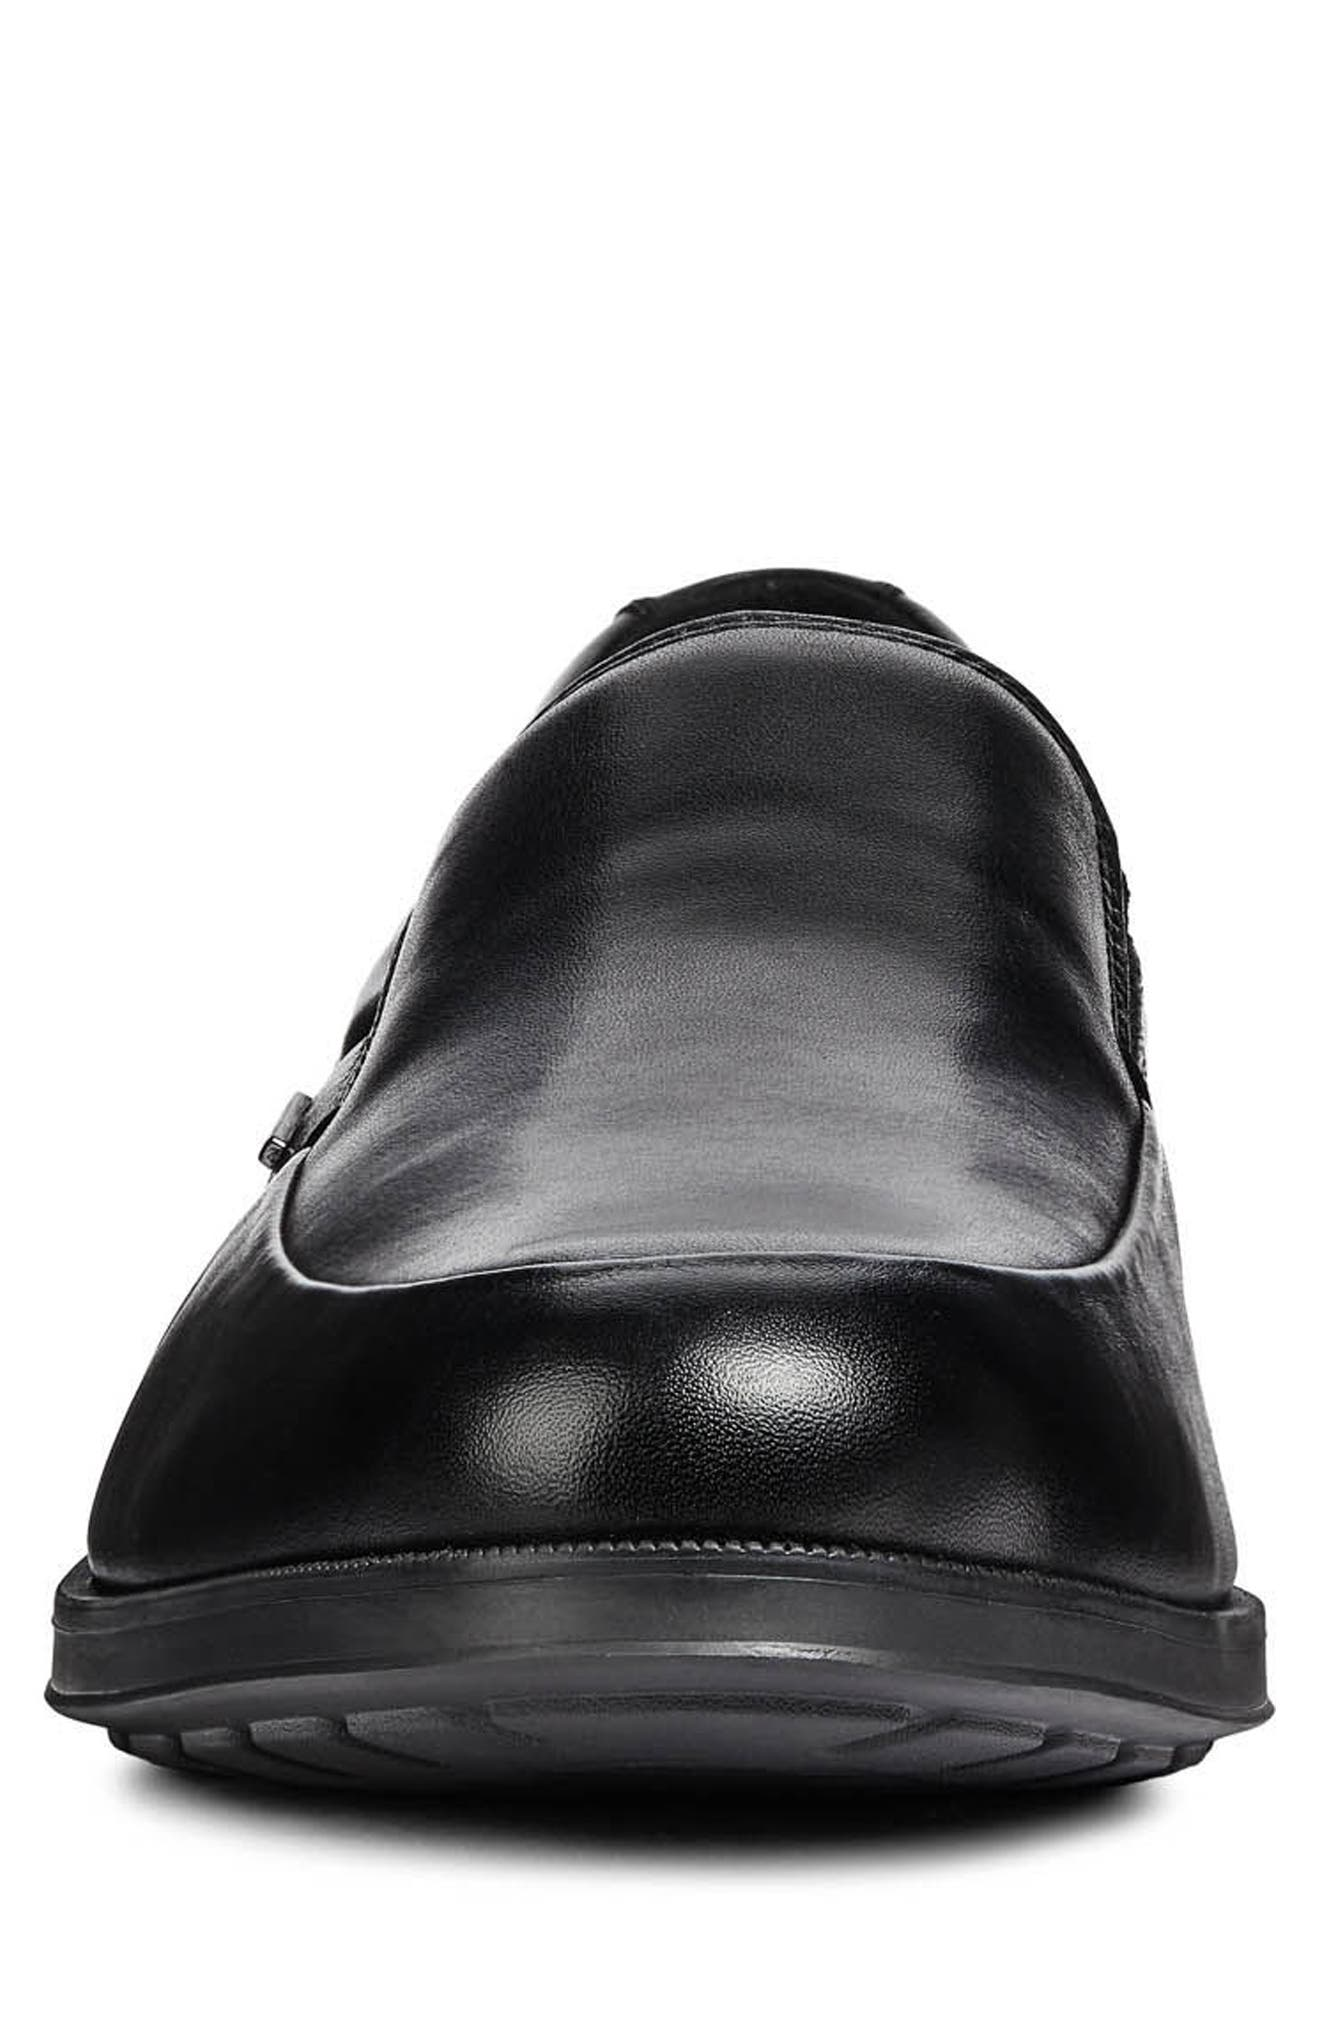 GEOX,                             Hilstone ABX 2 Loafer,                             Alternate thumbnail 4, color,                             BLACK LEATHER